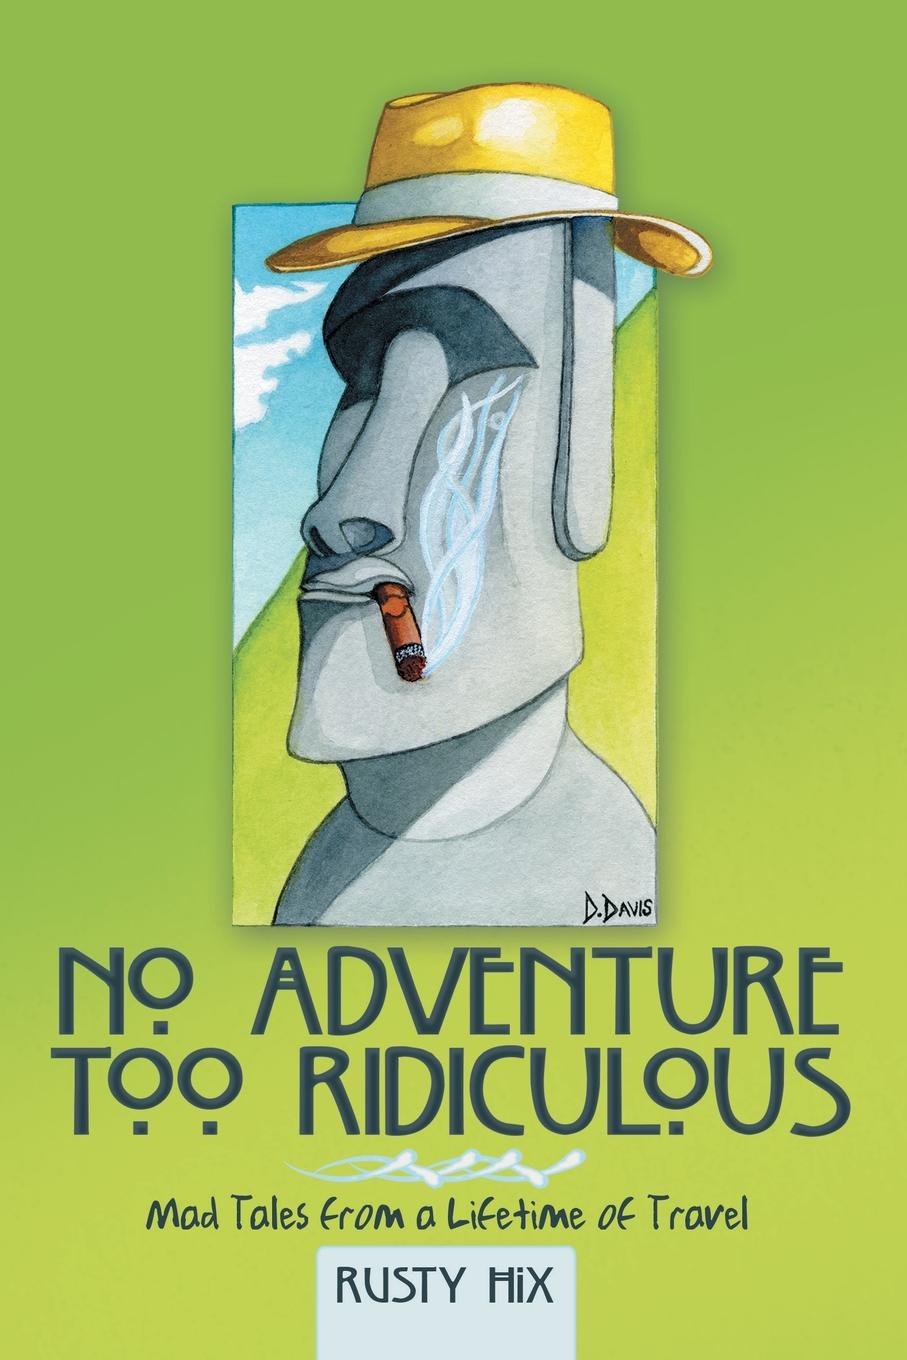 Rusty Hix No Adventure Too Ridiculous. Mad Tales from a Lifetime of Travel